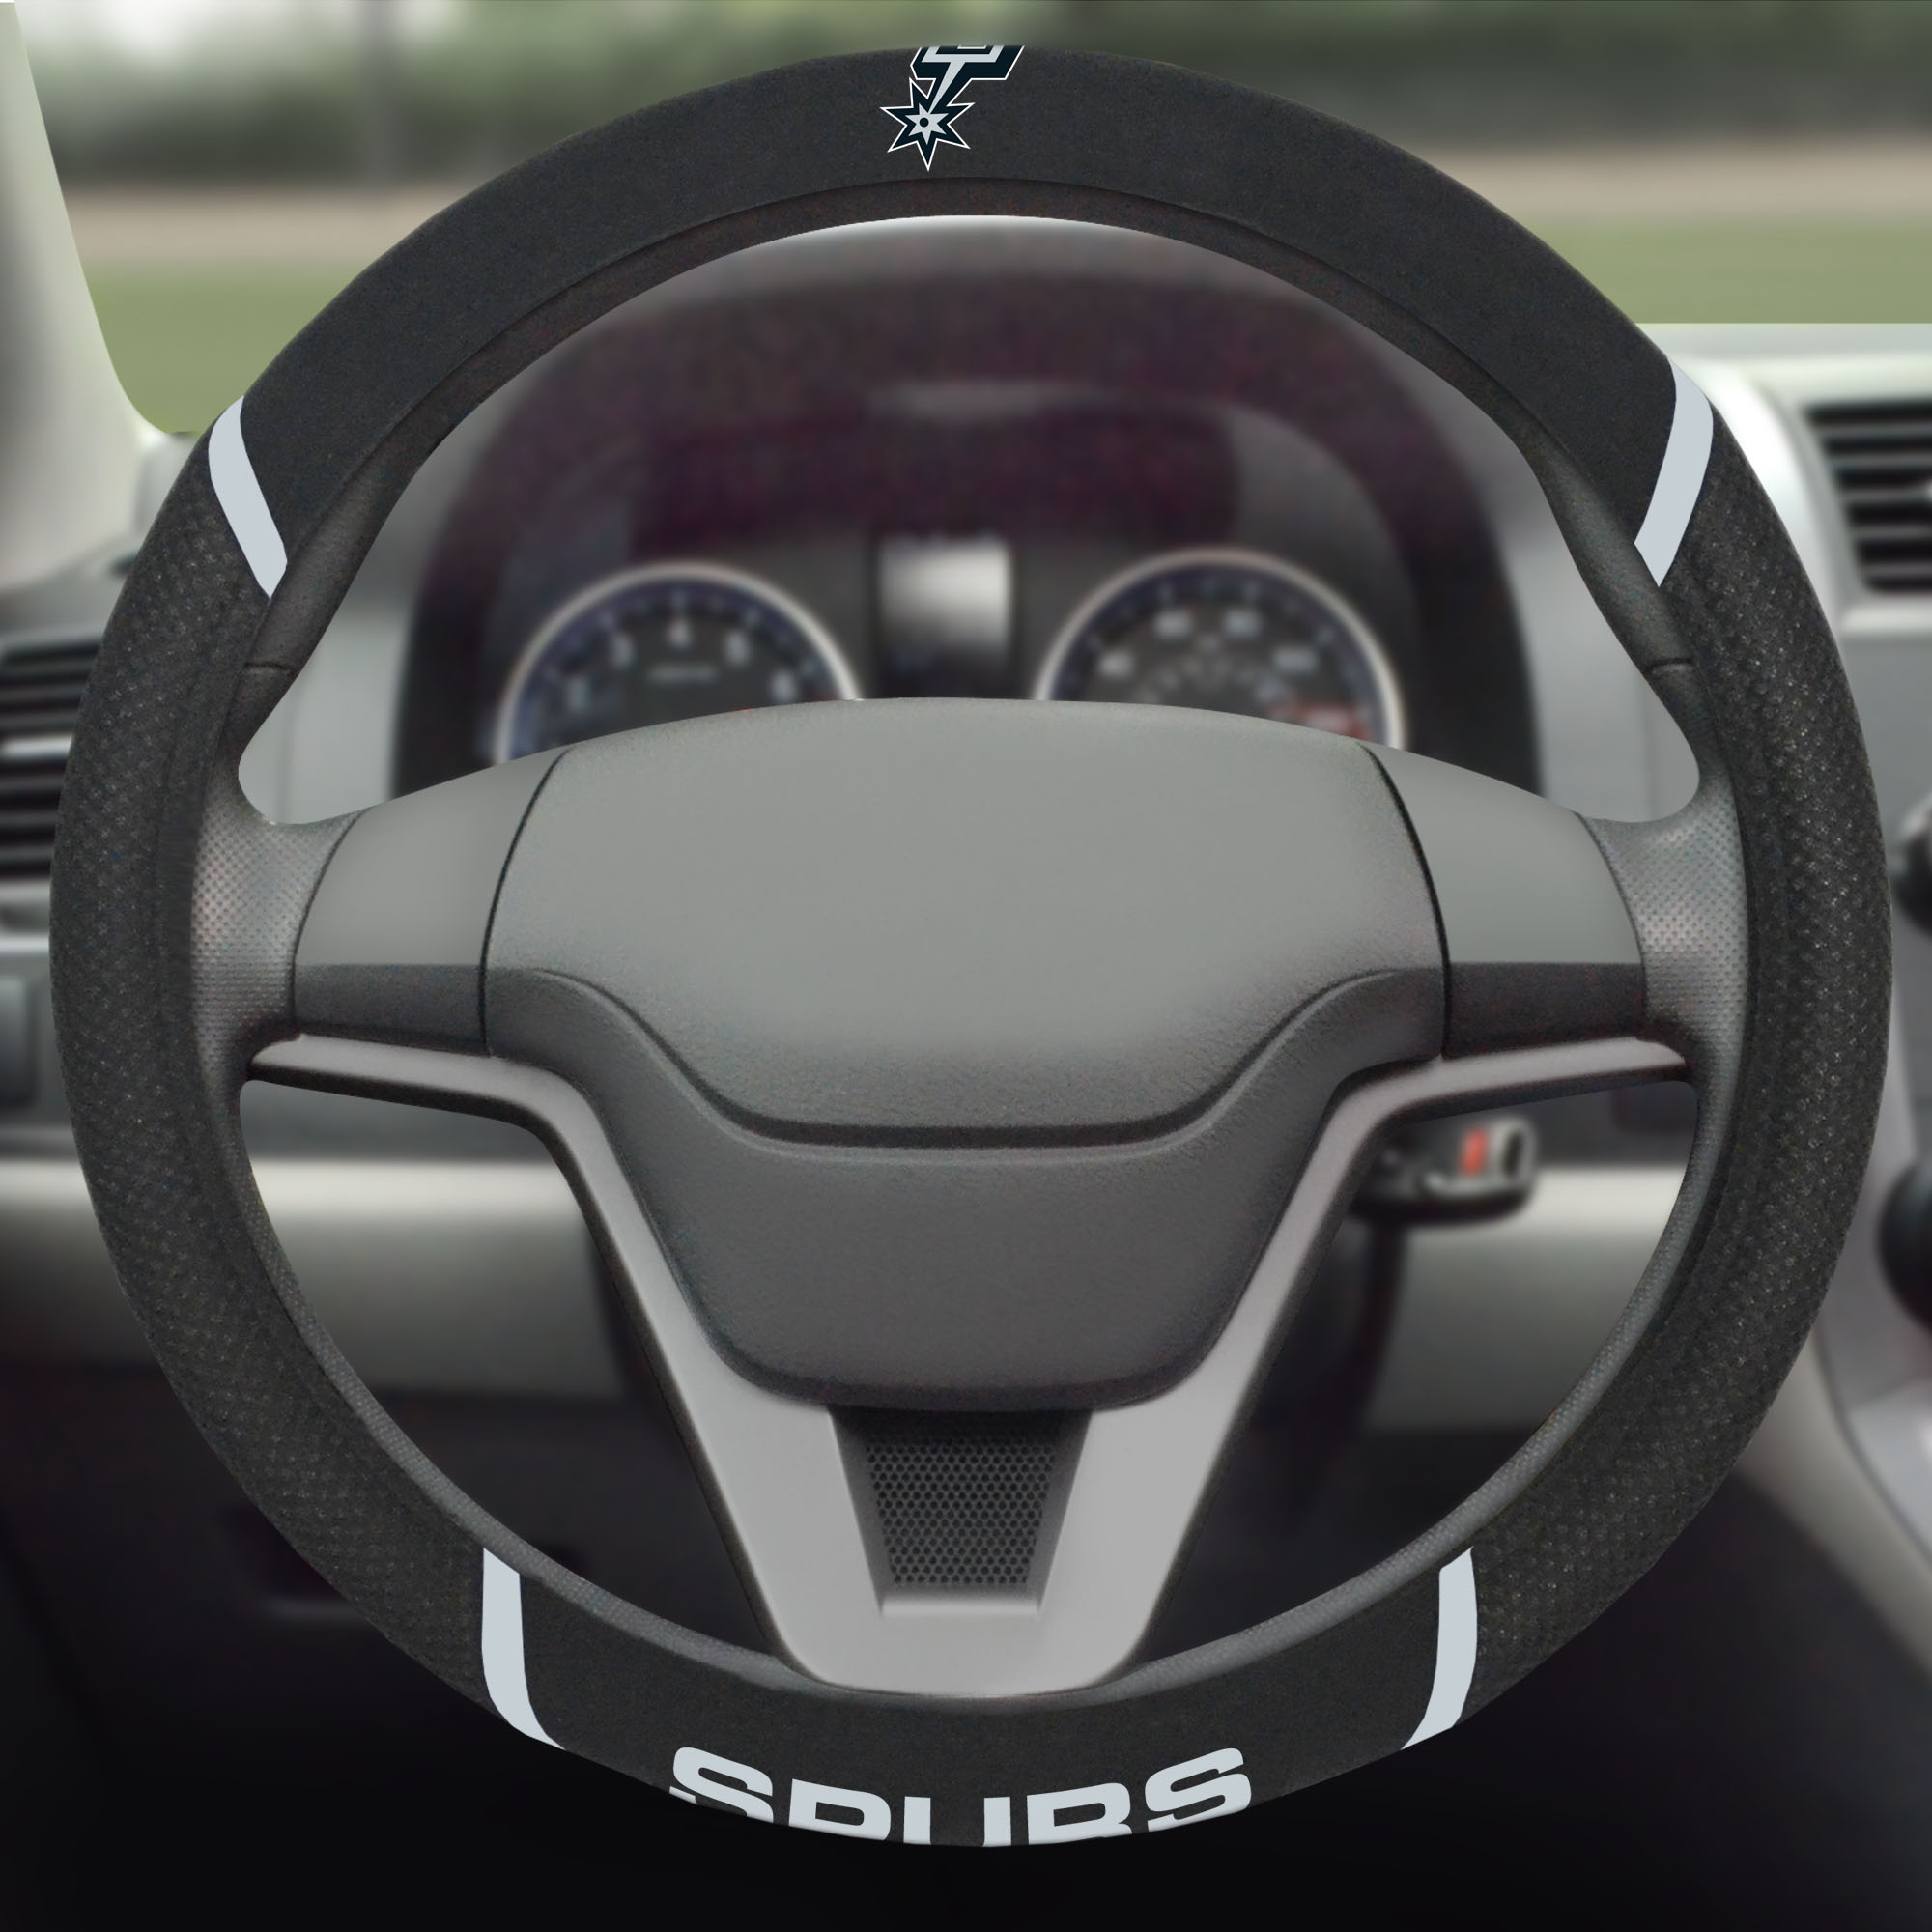 San Antonio Spurs Steering Wheel Cover - No Size